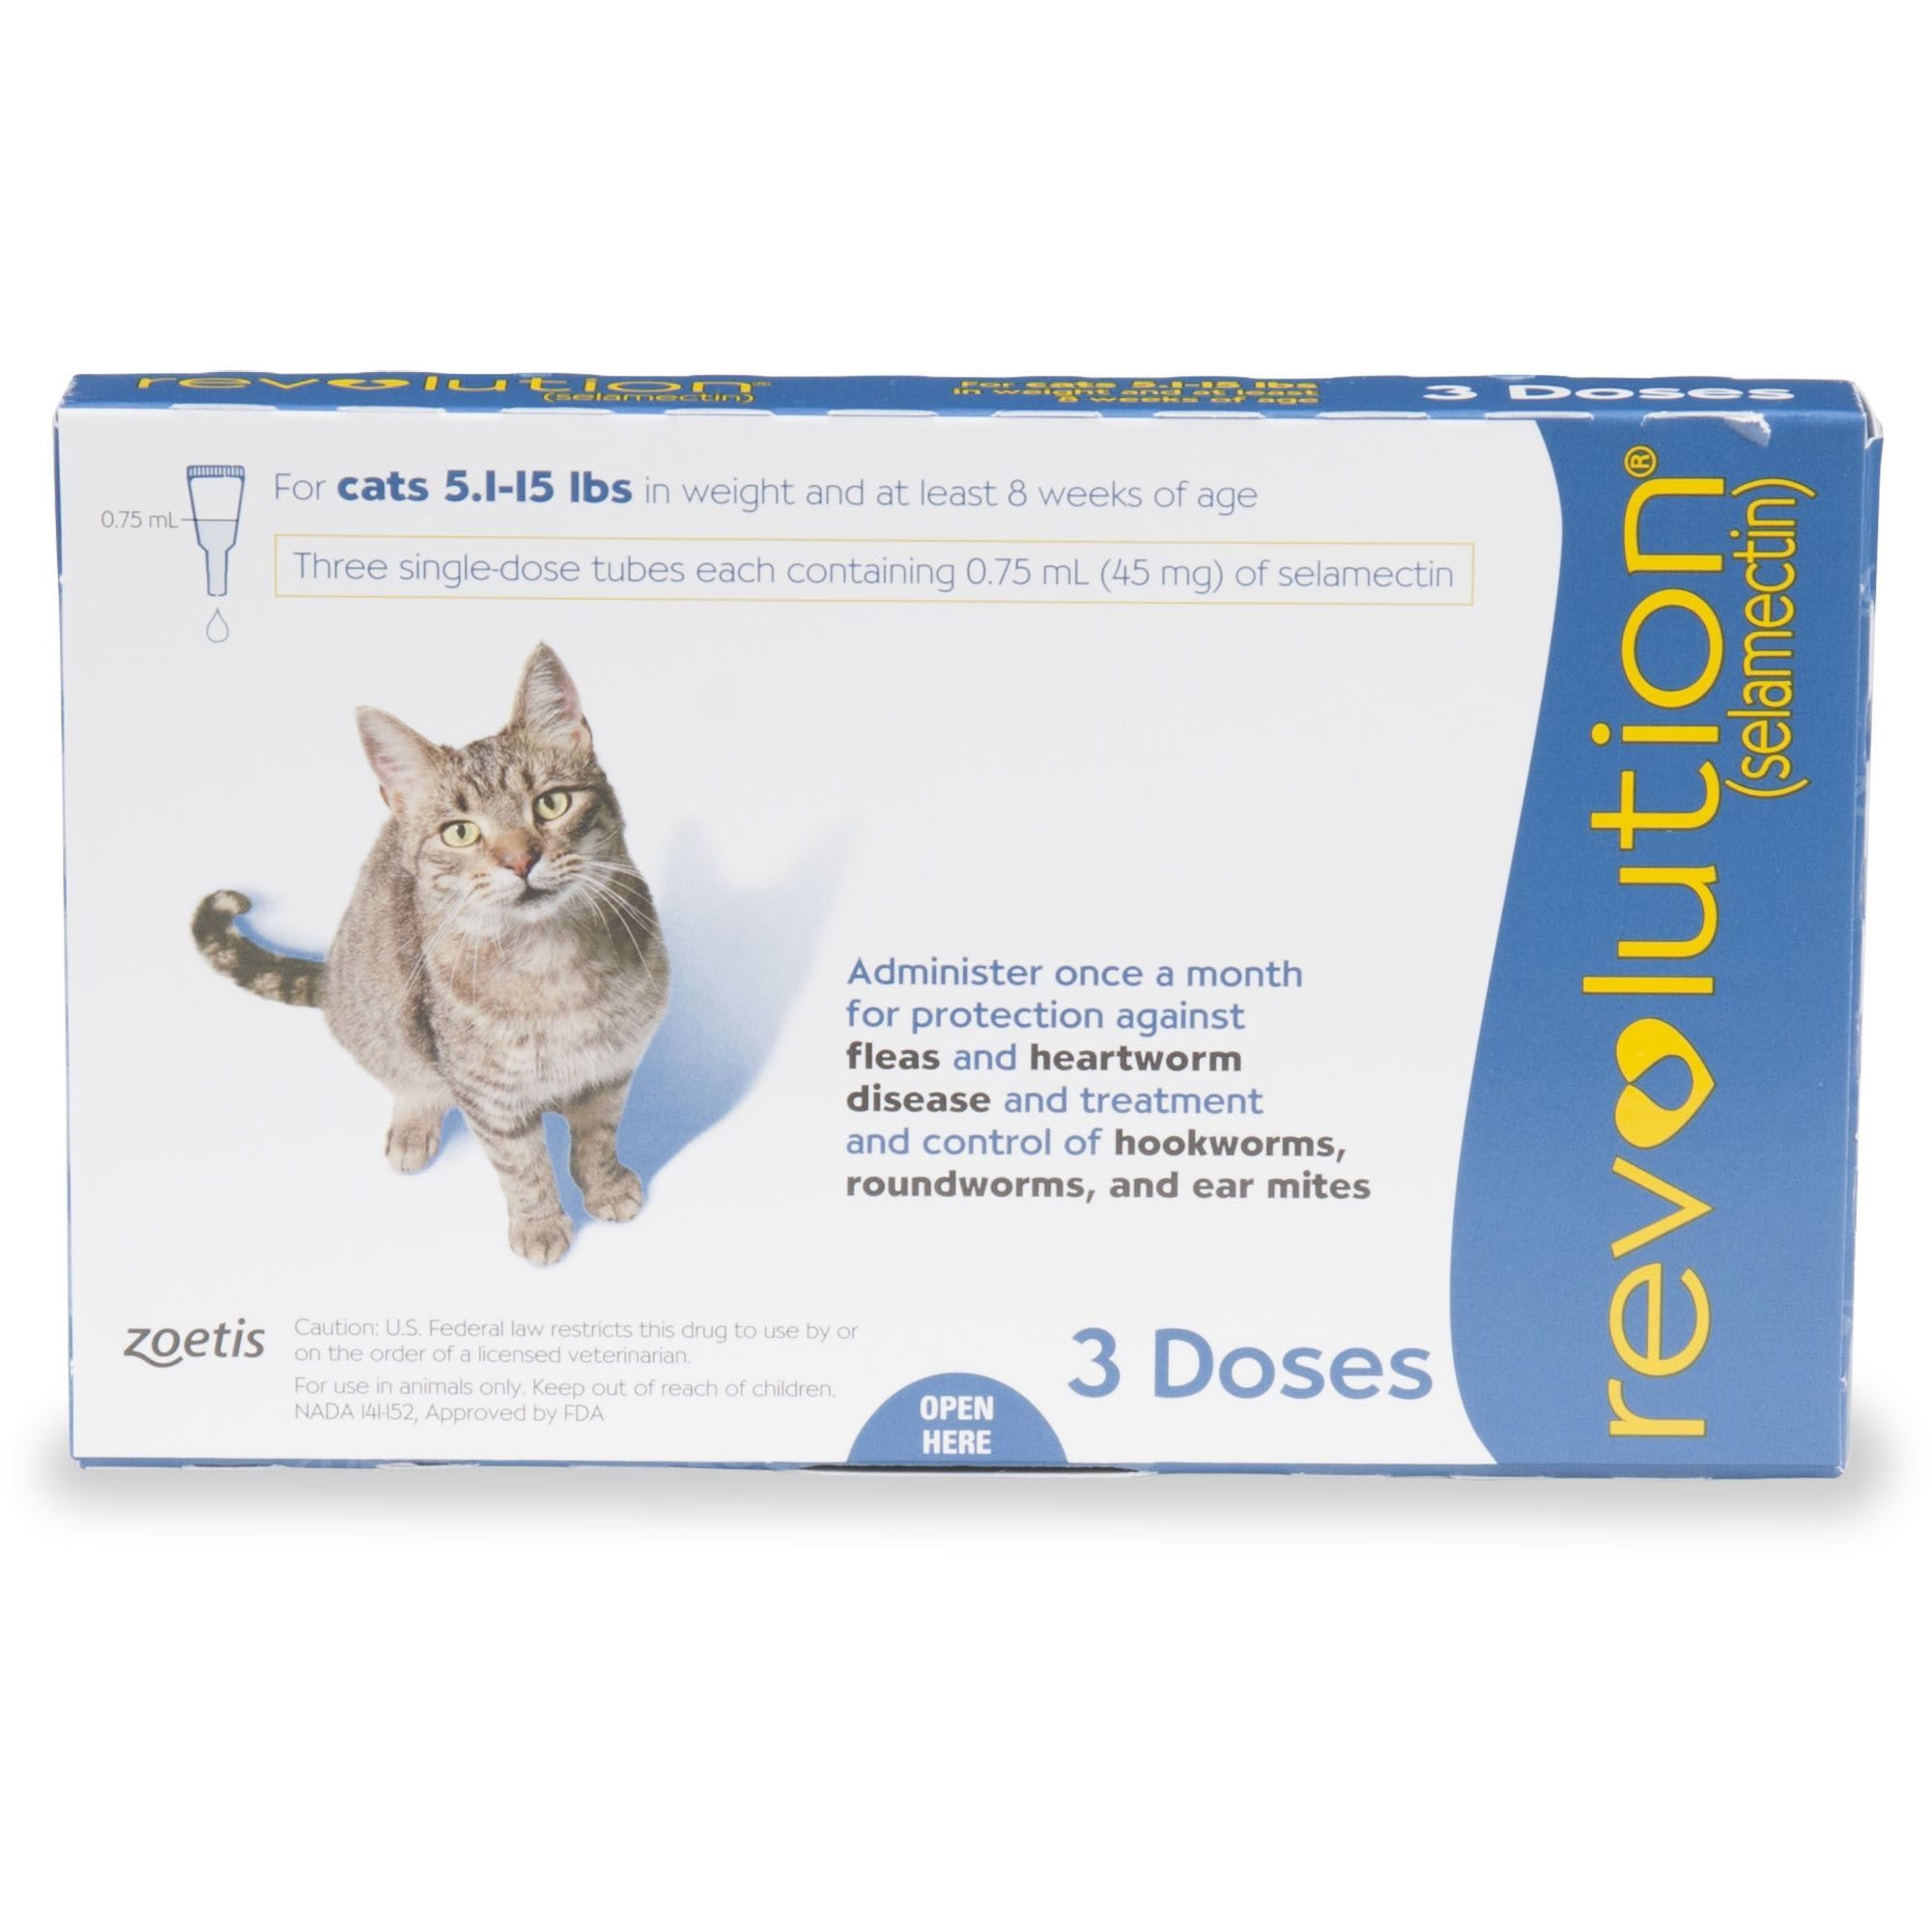 Revolution Topical Solution For Cats 5 1 15 Lbs Blue 3 Pack Petco In 2020 Cat Fleas Revolution Flea Flea Prevention For Cats